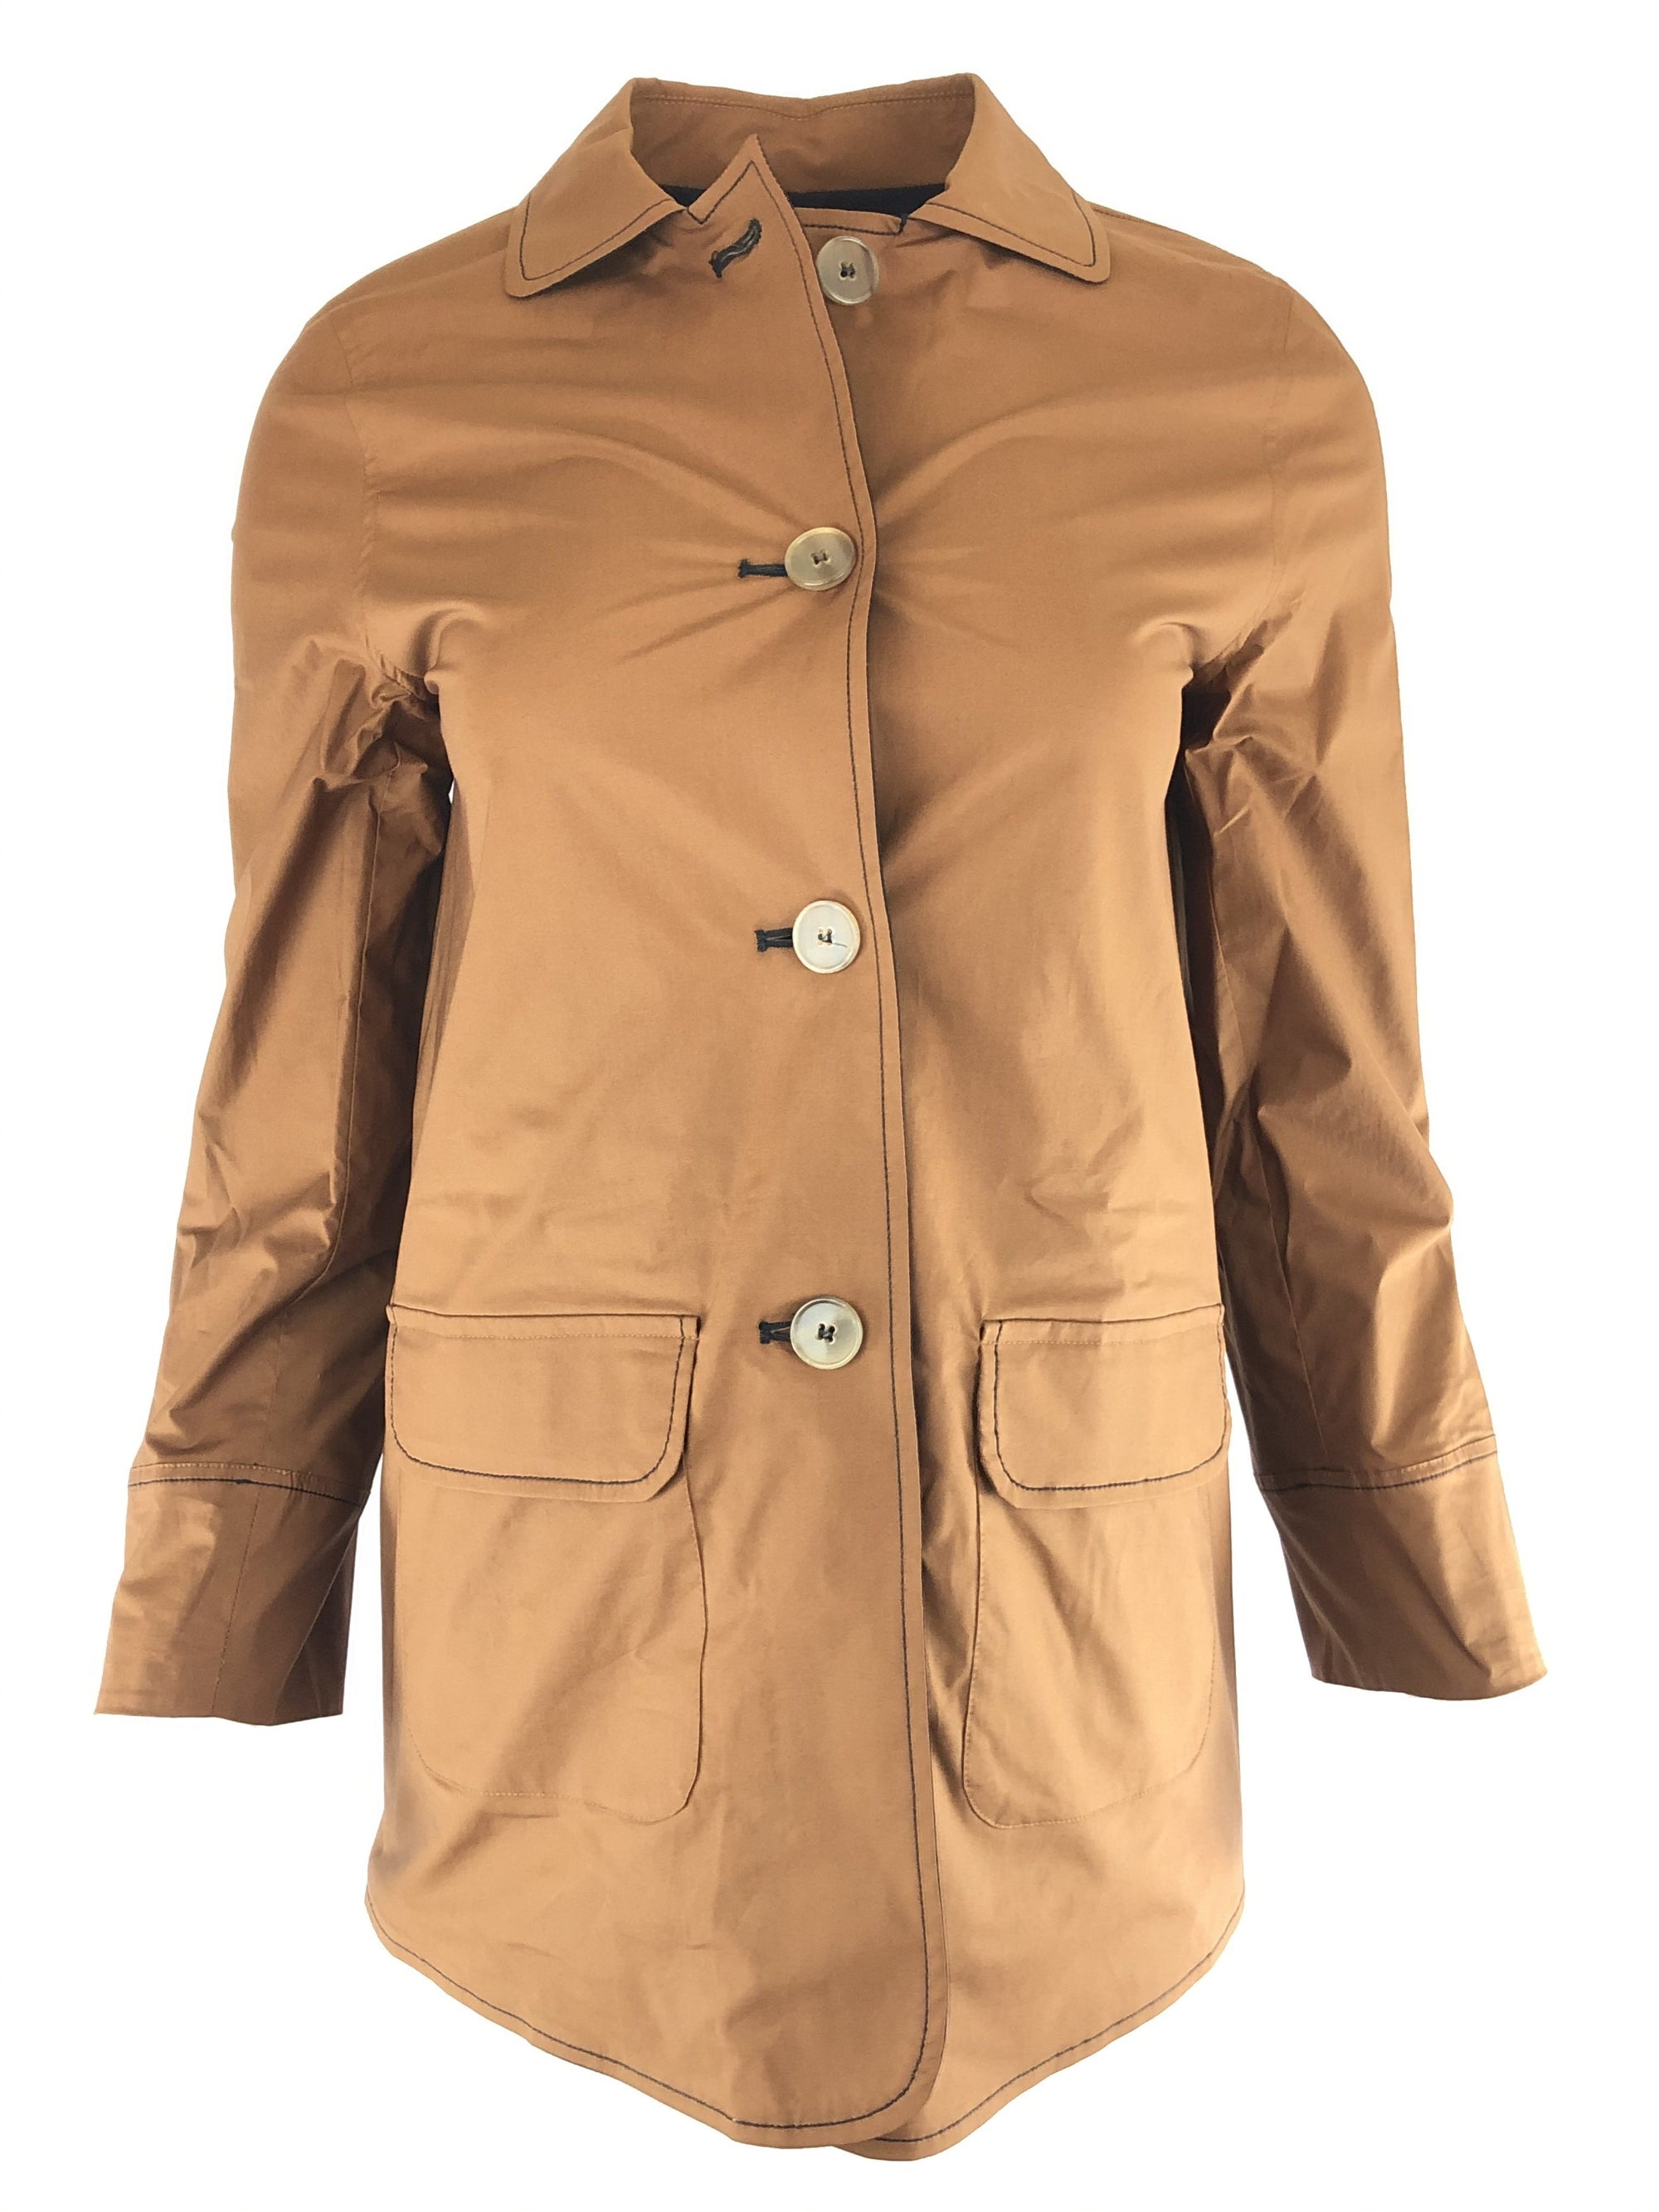 ROSSO 35 WOMEN'S REVERSIBLE JACKET - VICUNA/NAVY